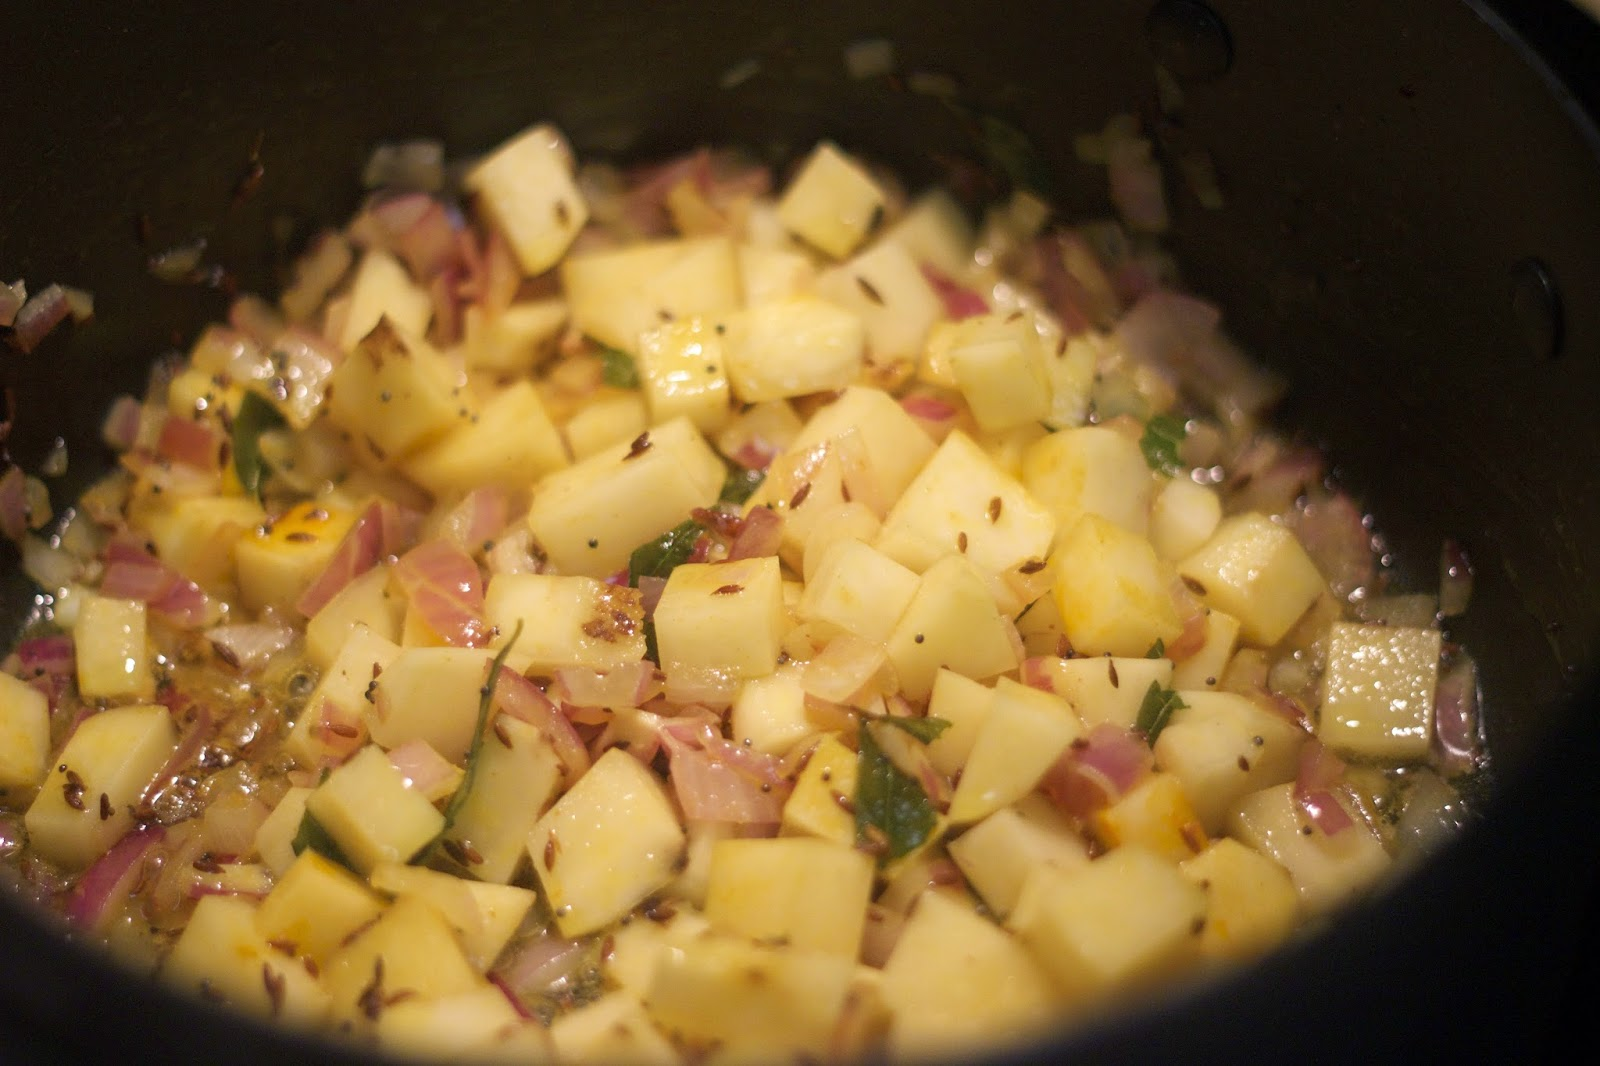 Before Picture: Adding Potatoes to Vegetarian Vegan Batata / Potato Poha Indian Breakfast